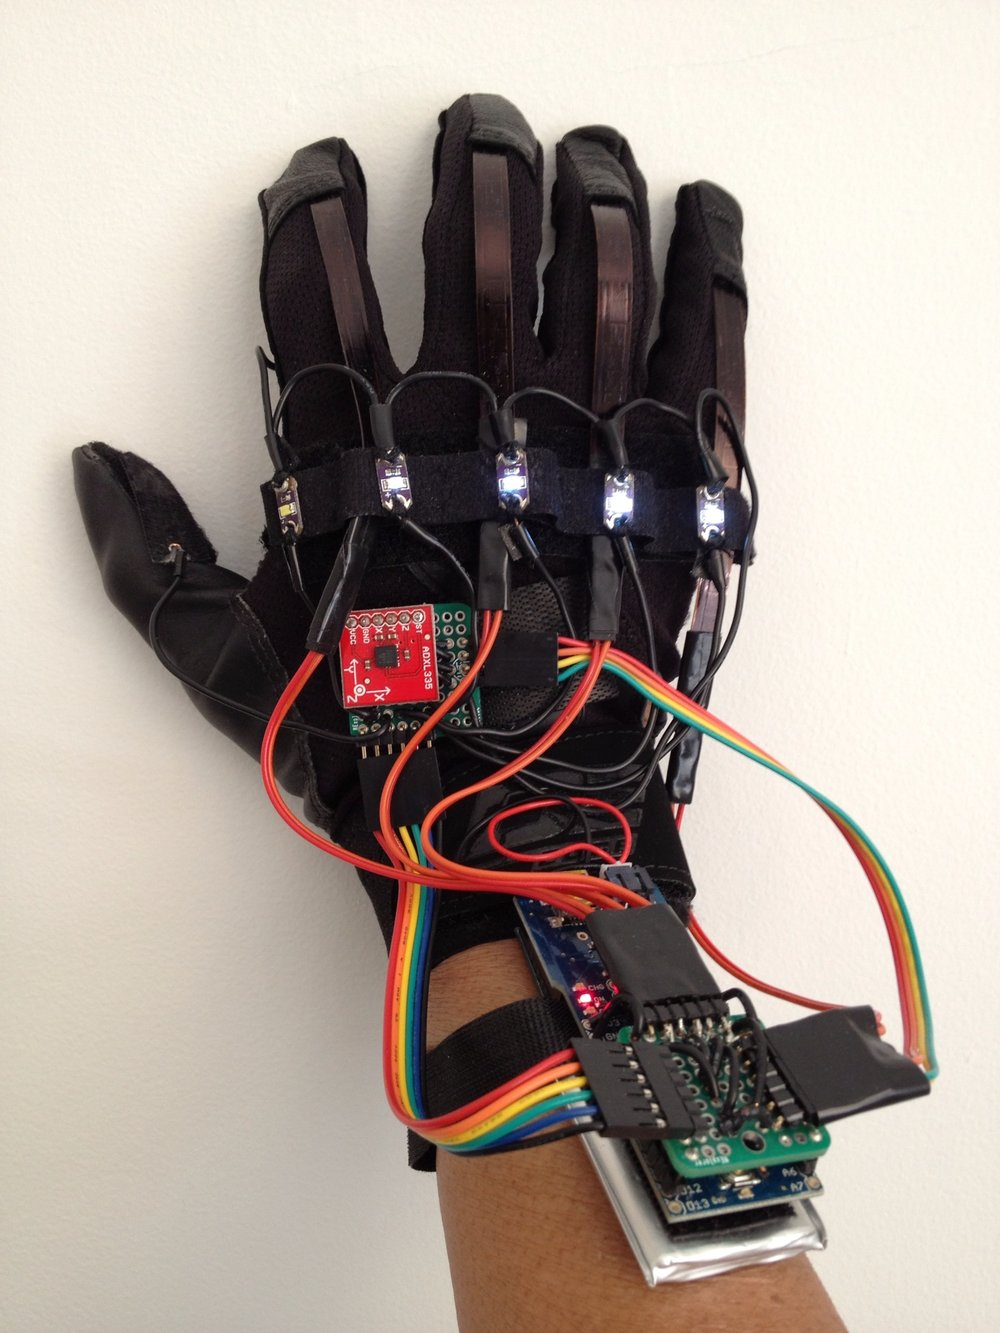 A W.A.V.E. Glove is a Wearable Audio & Vocal Exciter   WAVE Glove , designed in collaboration with  Takahiko Tsuchiya . Takahiko Tsuchiya earned his bachelor's degree in music from Berklee College in Boston and master's degree in music technology from Georgia Tech, where he continues as a doctoral student. His primary research interests are data sonification and analytics, including the development of web-based data-agnostic sonification frameworks, and encoding and decoding of data using musical structures.